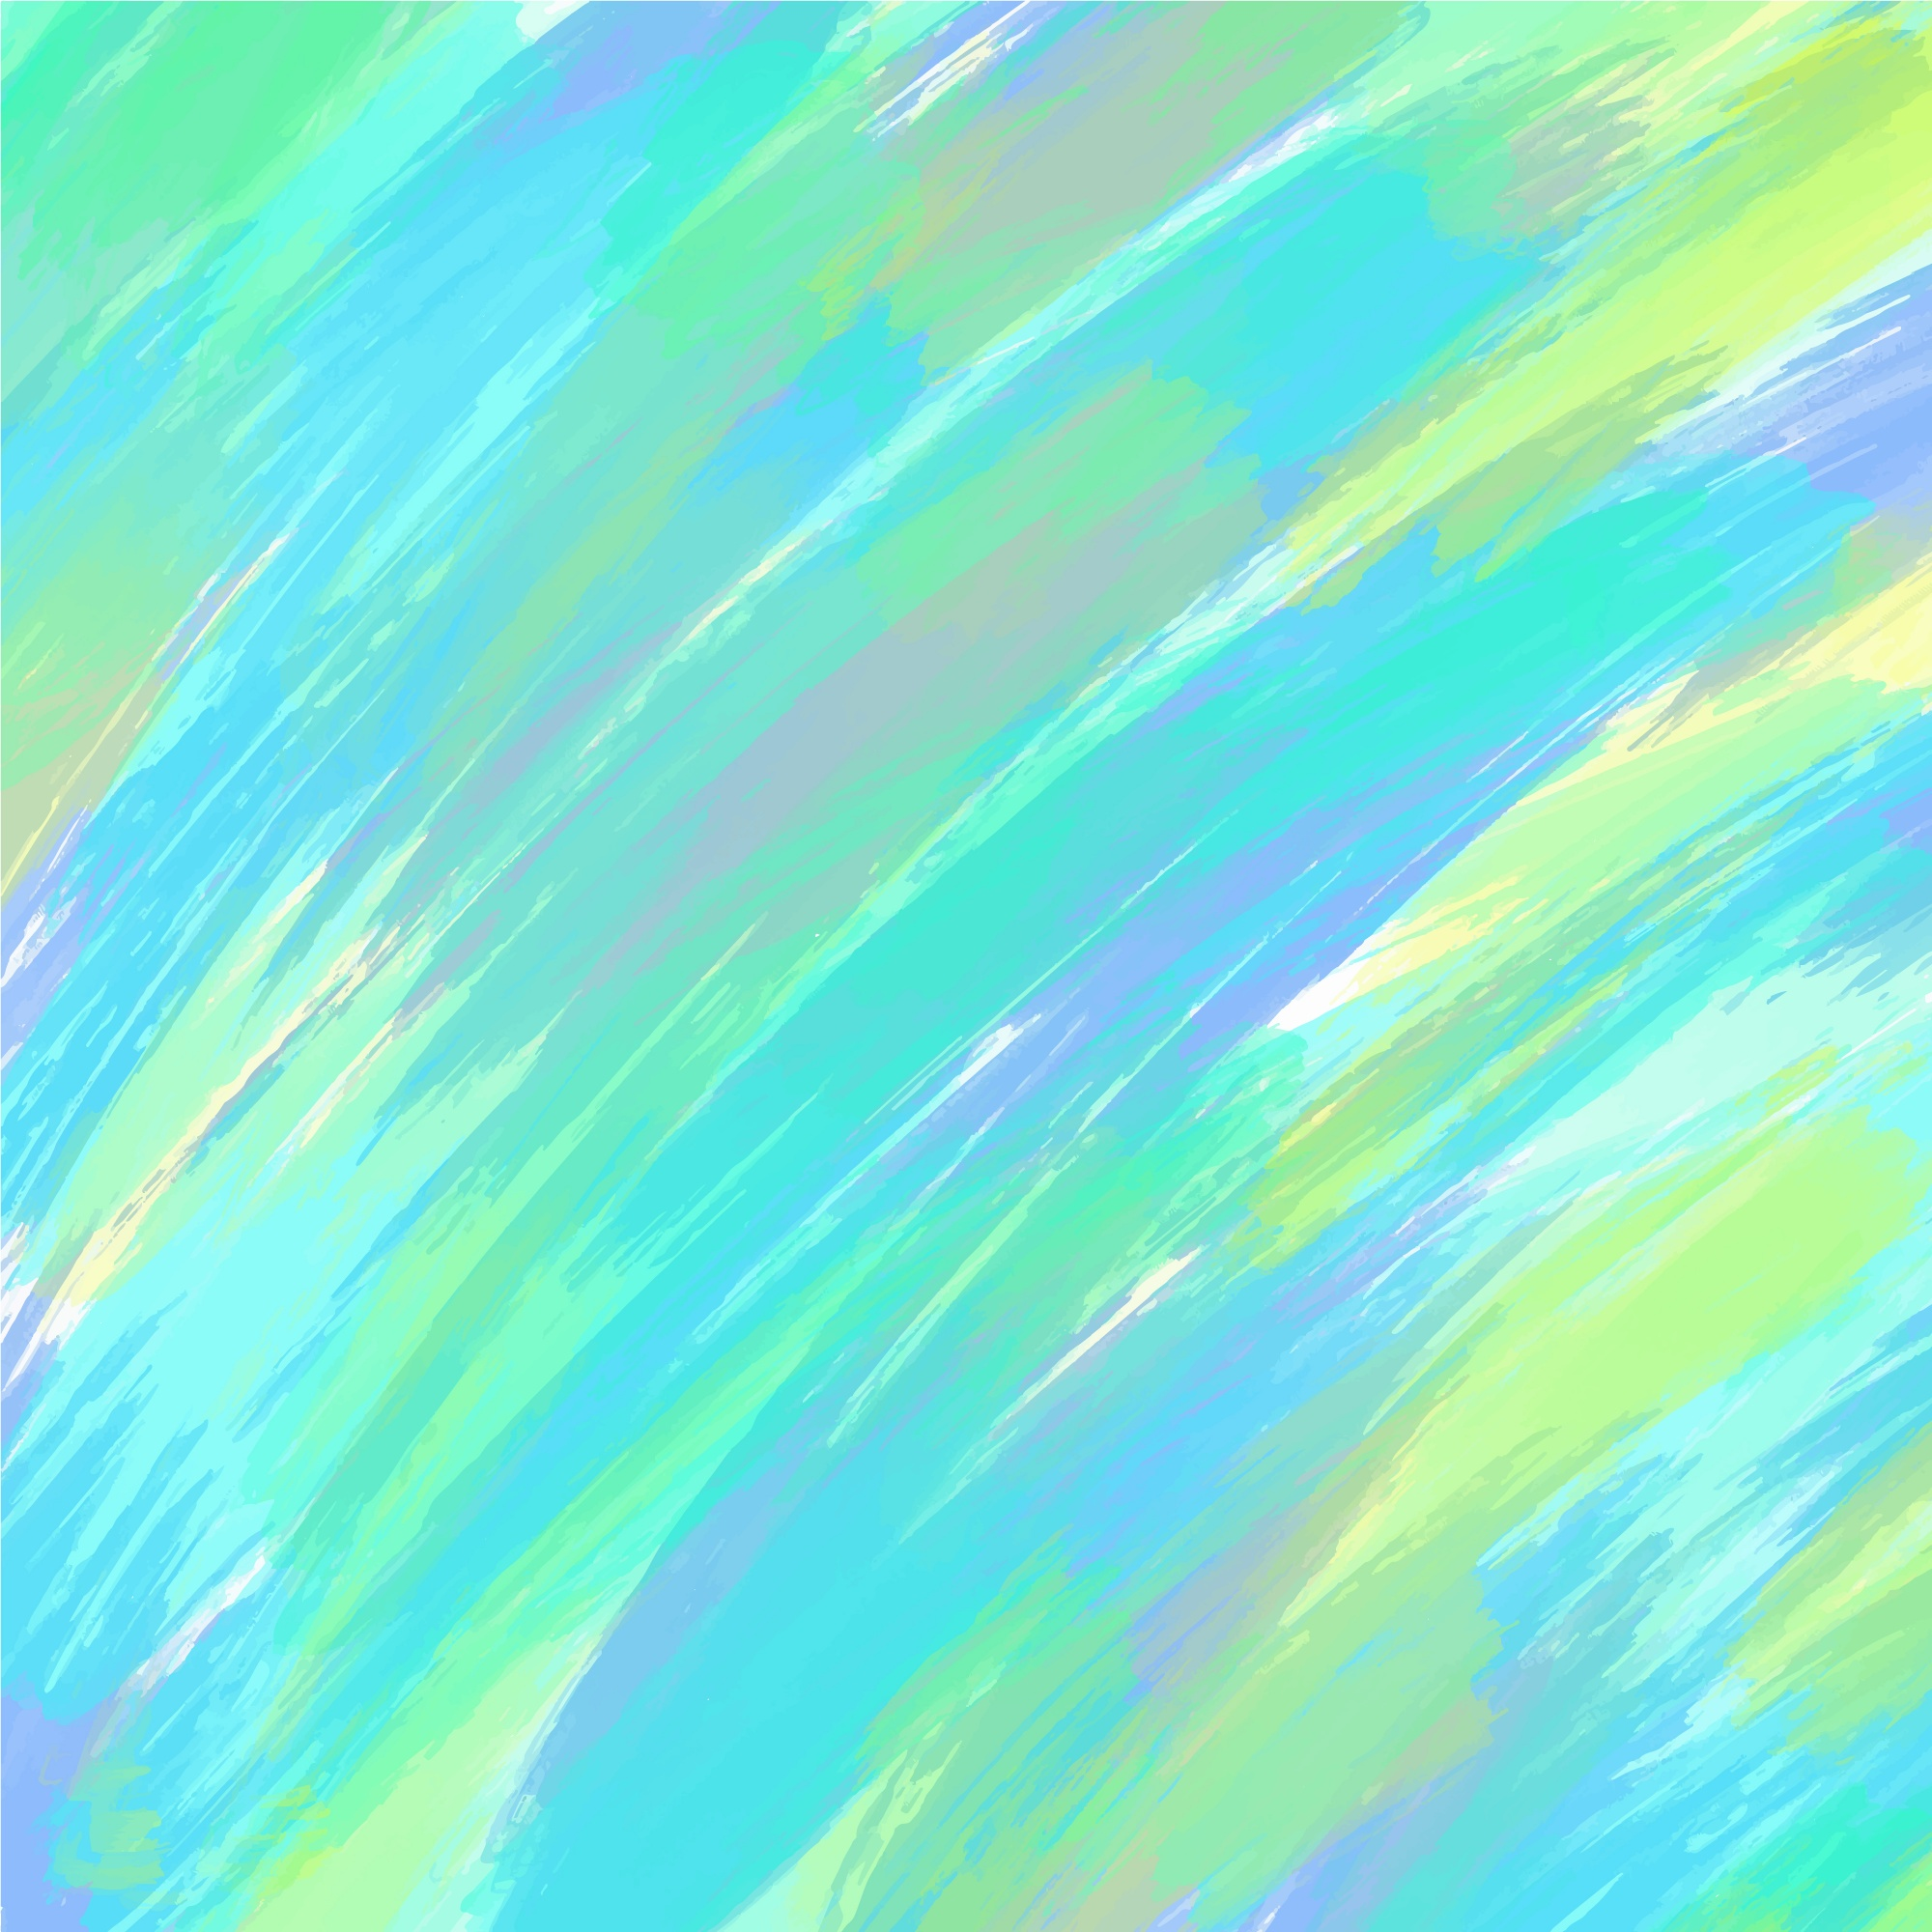 Abstract blue watercolor design